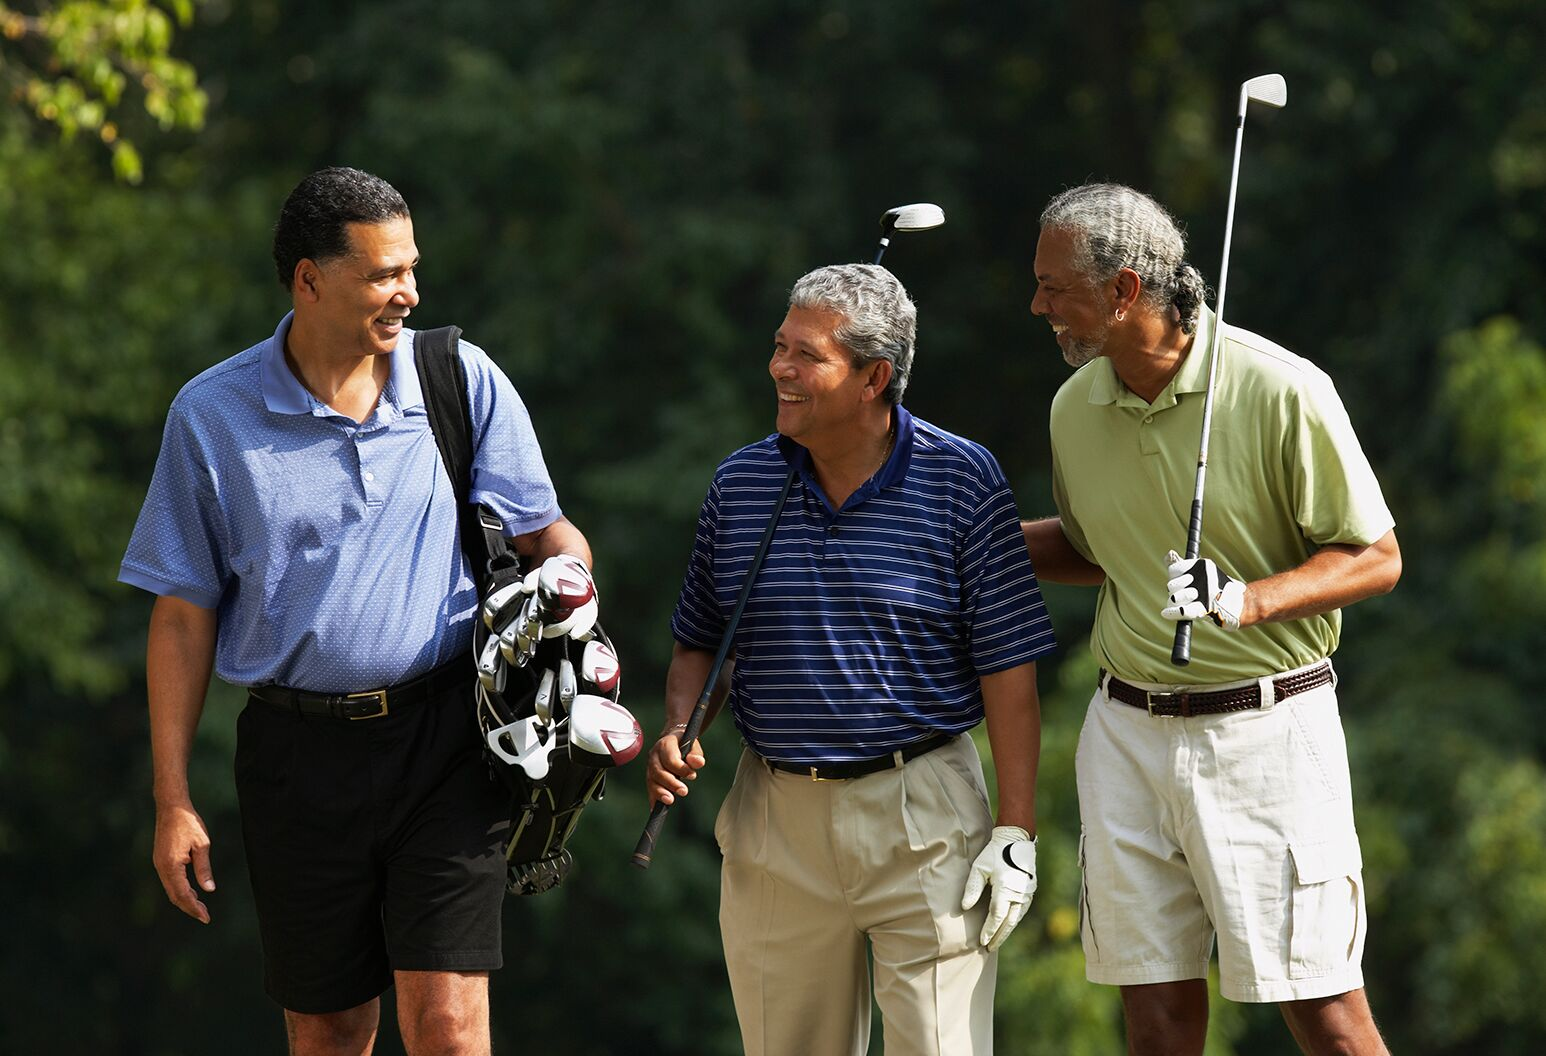 Three men smiling on a golf course